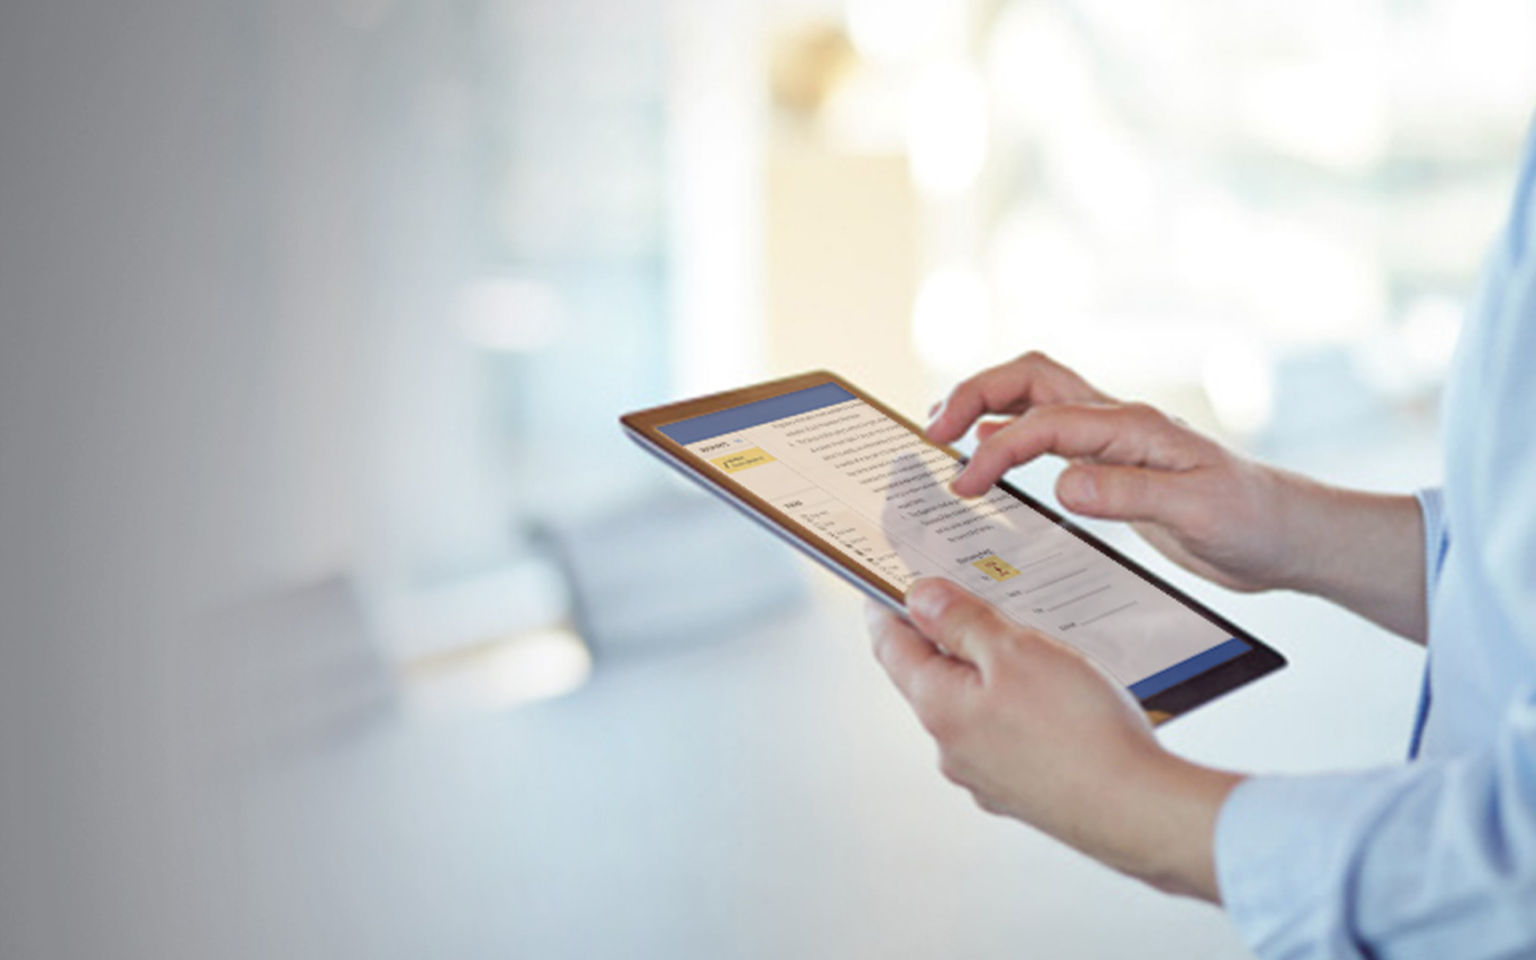 How to electronically sign documents on an iPhone/iPad